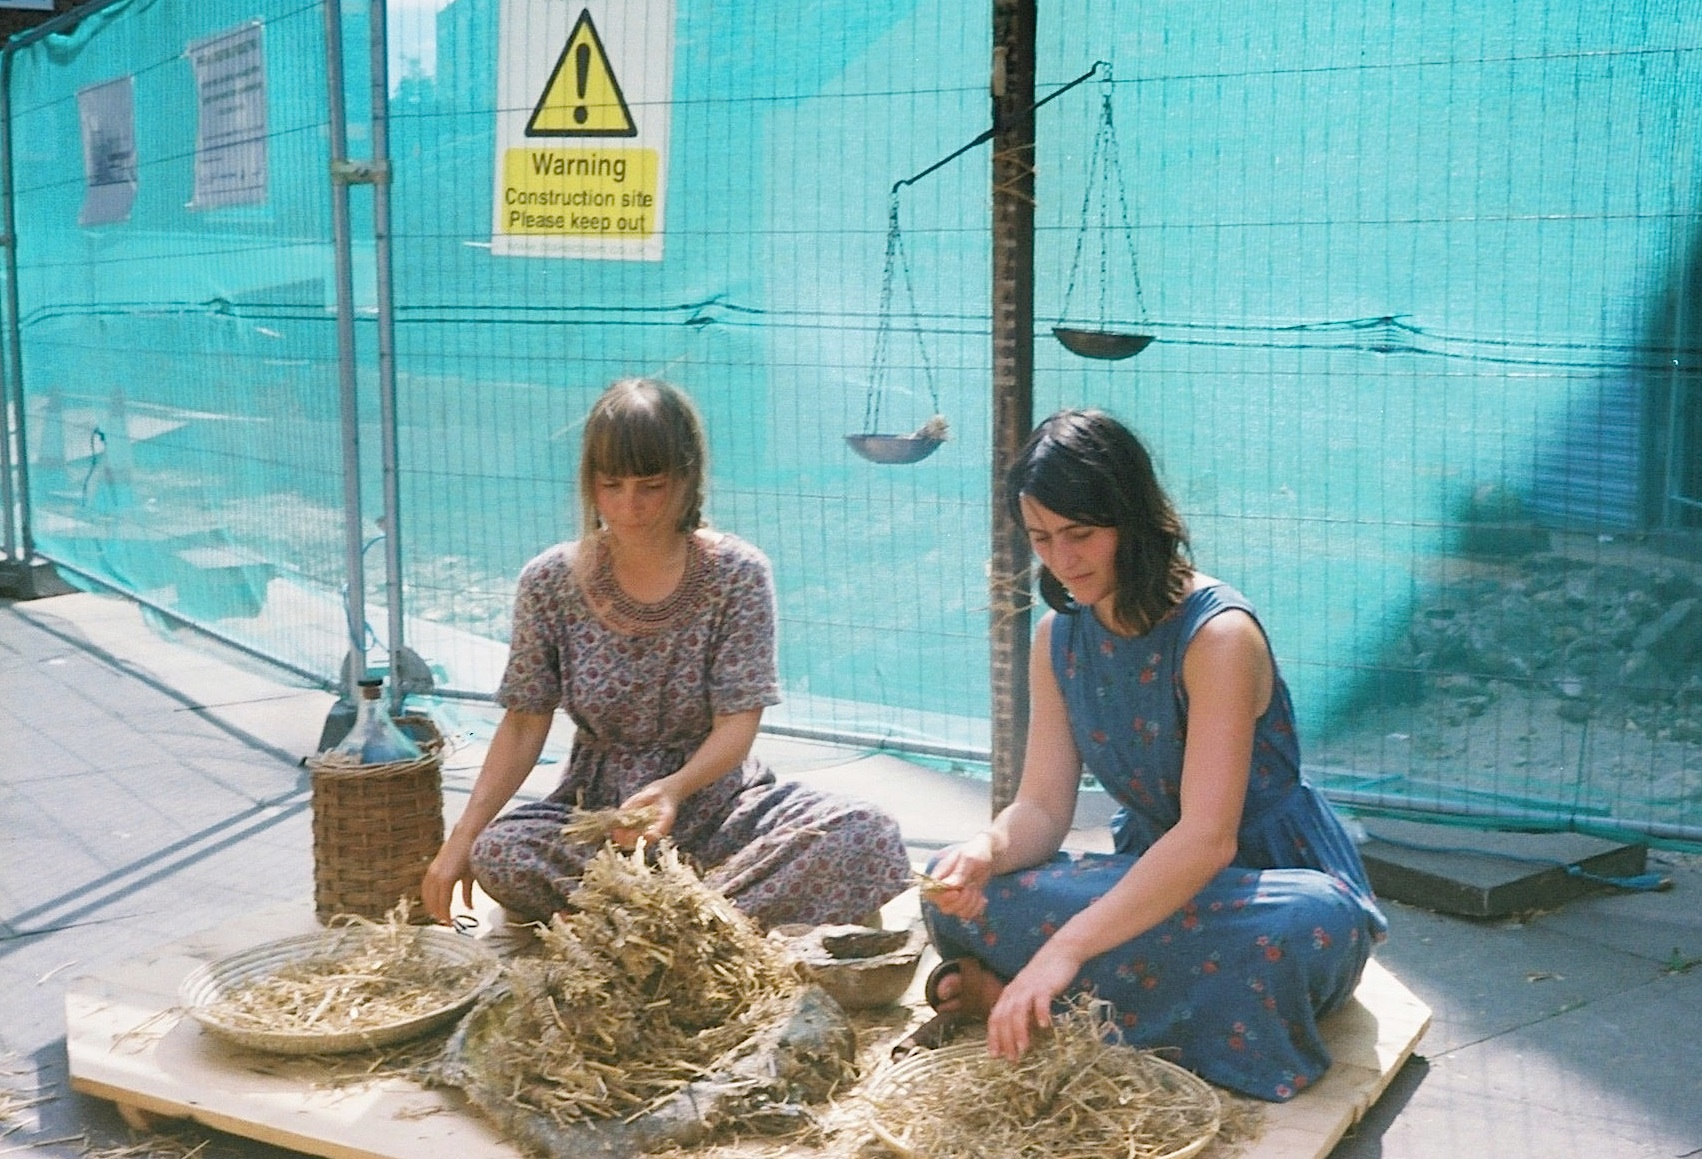 Two people making bundles of straw